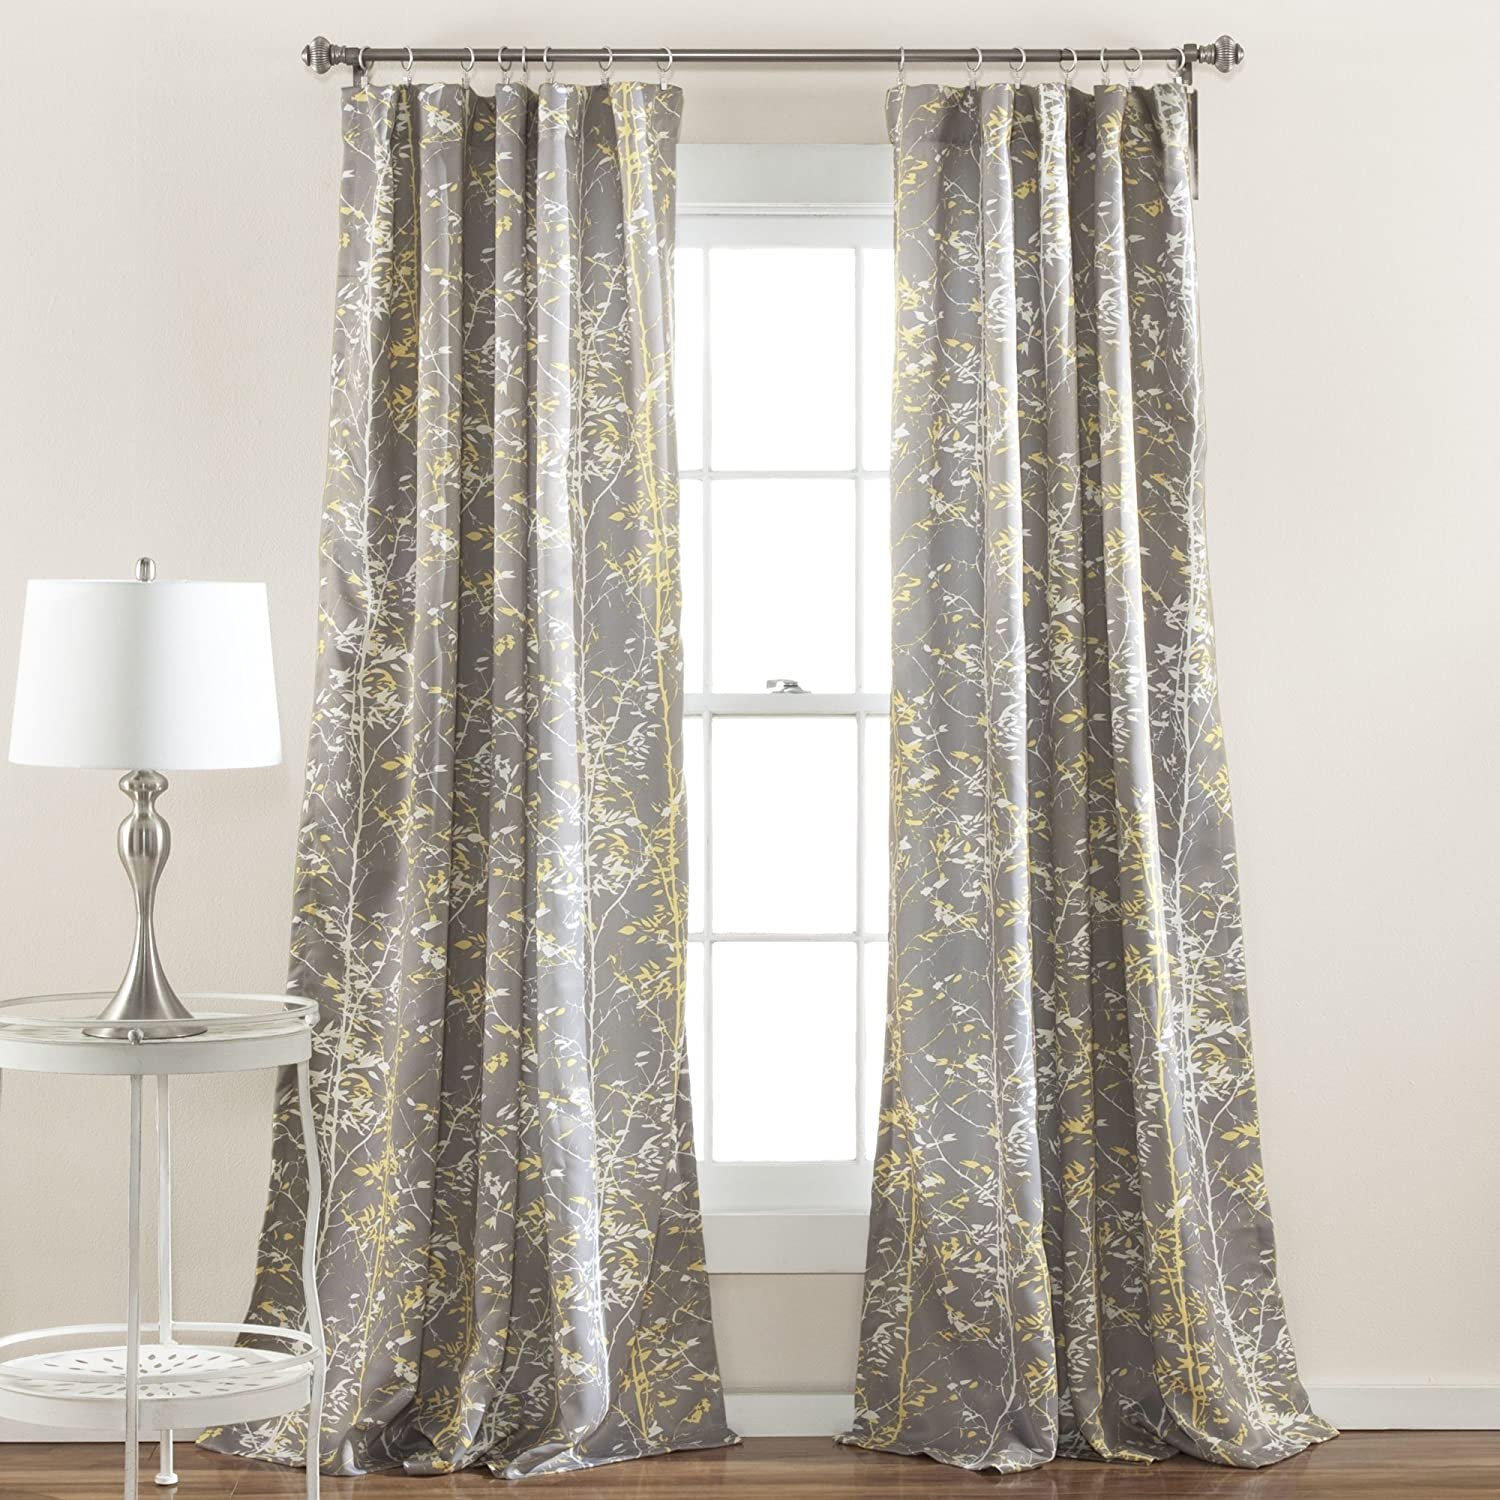 Amazon Lush Decor Forest Window Curtain Panel Set Of 2 84 X 52 Gray Yellow Home Kitchen